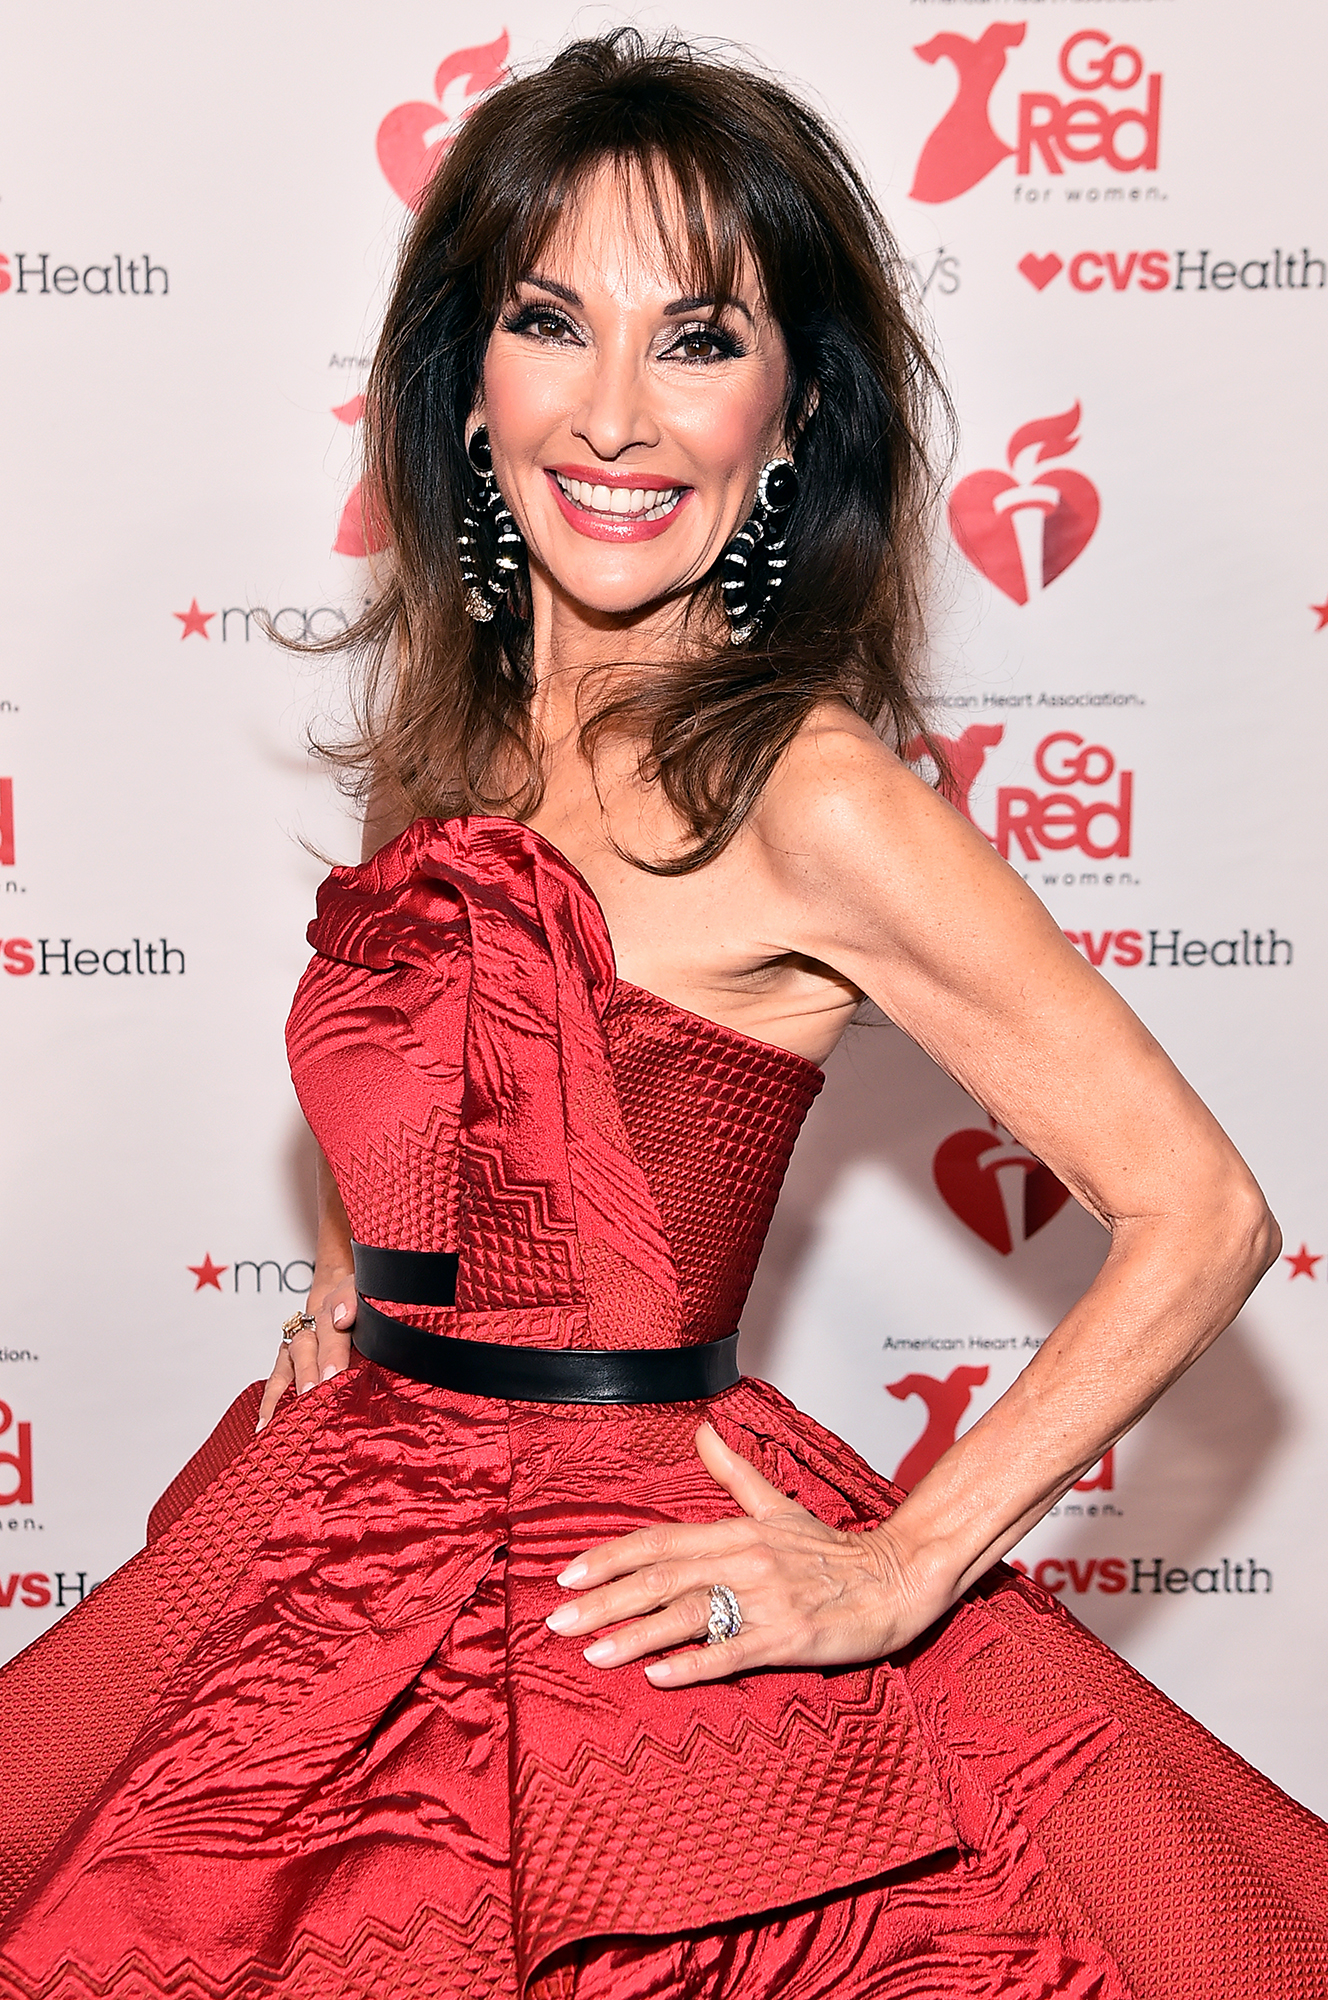 Heart Attack Survivors - In the fall of 2018, the soap opera star reluctantly went to the hospital after experiencing chest pain that she nearly ignored. Once she was there, doctors found two blocked arteries and Lucci, then 71, underwent emergency surgery.